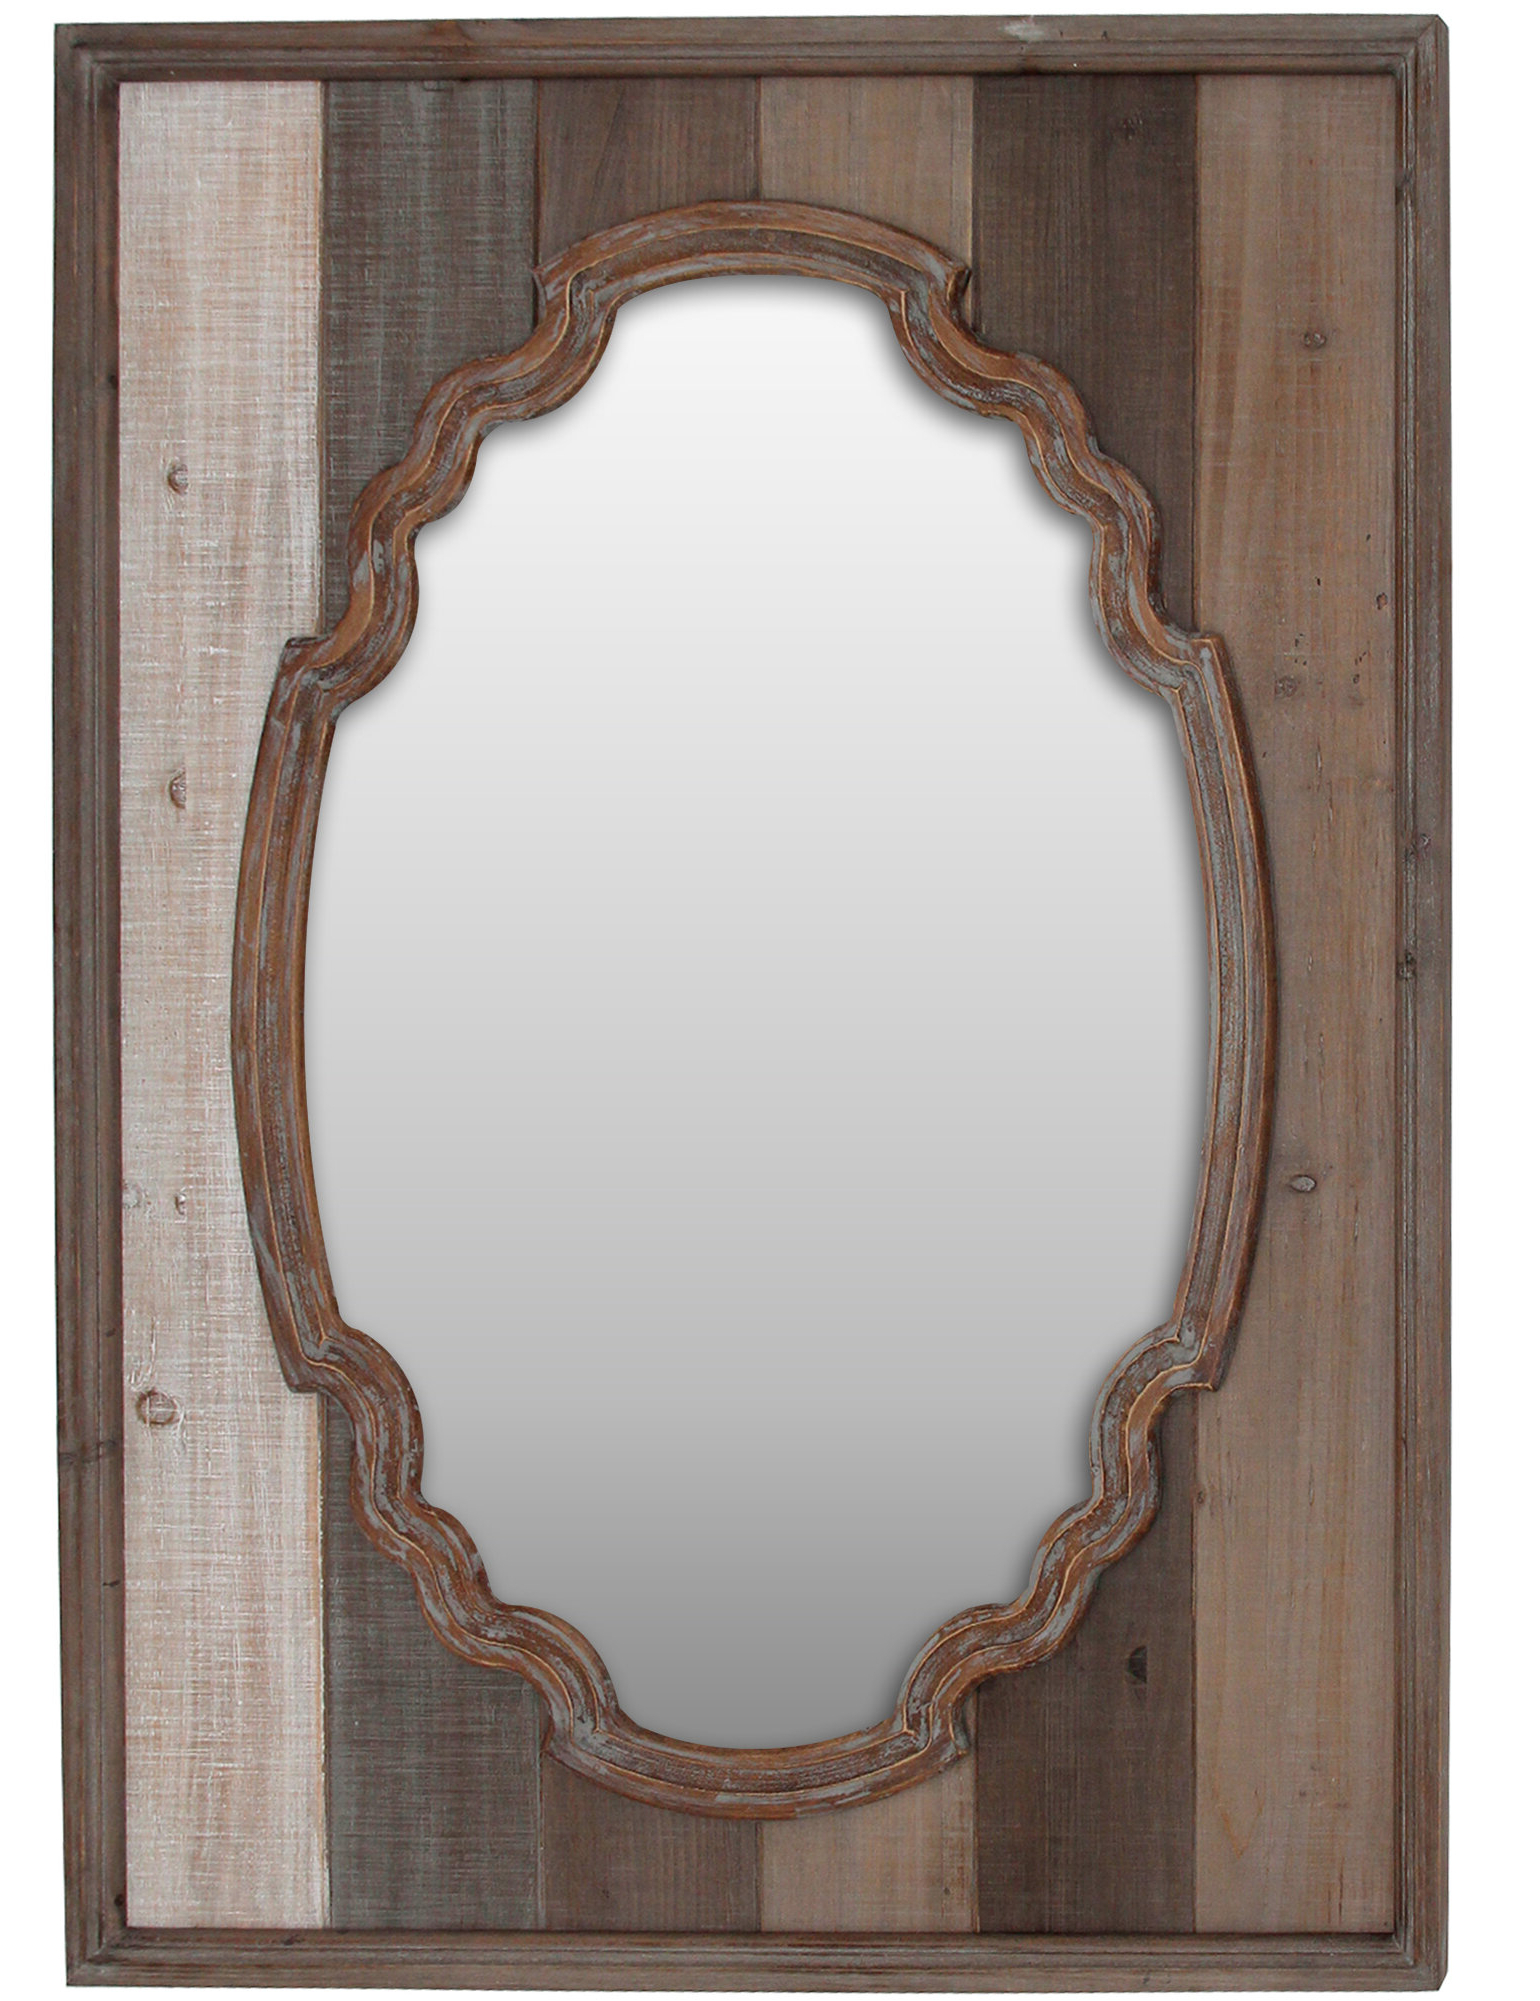 2019 Jaylyn Elegant Farmstead Rustic Accent Mirror For Padang Irregular Wood Framed Wall Mirrors (View 2 of 20)